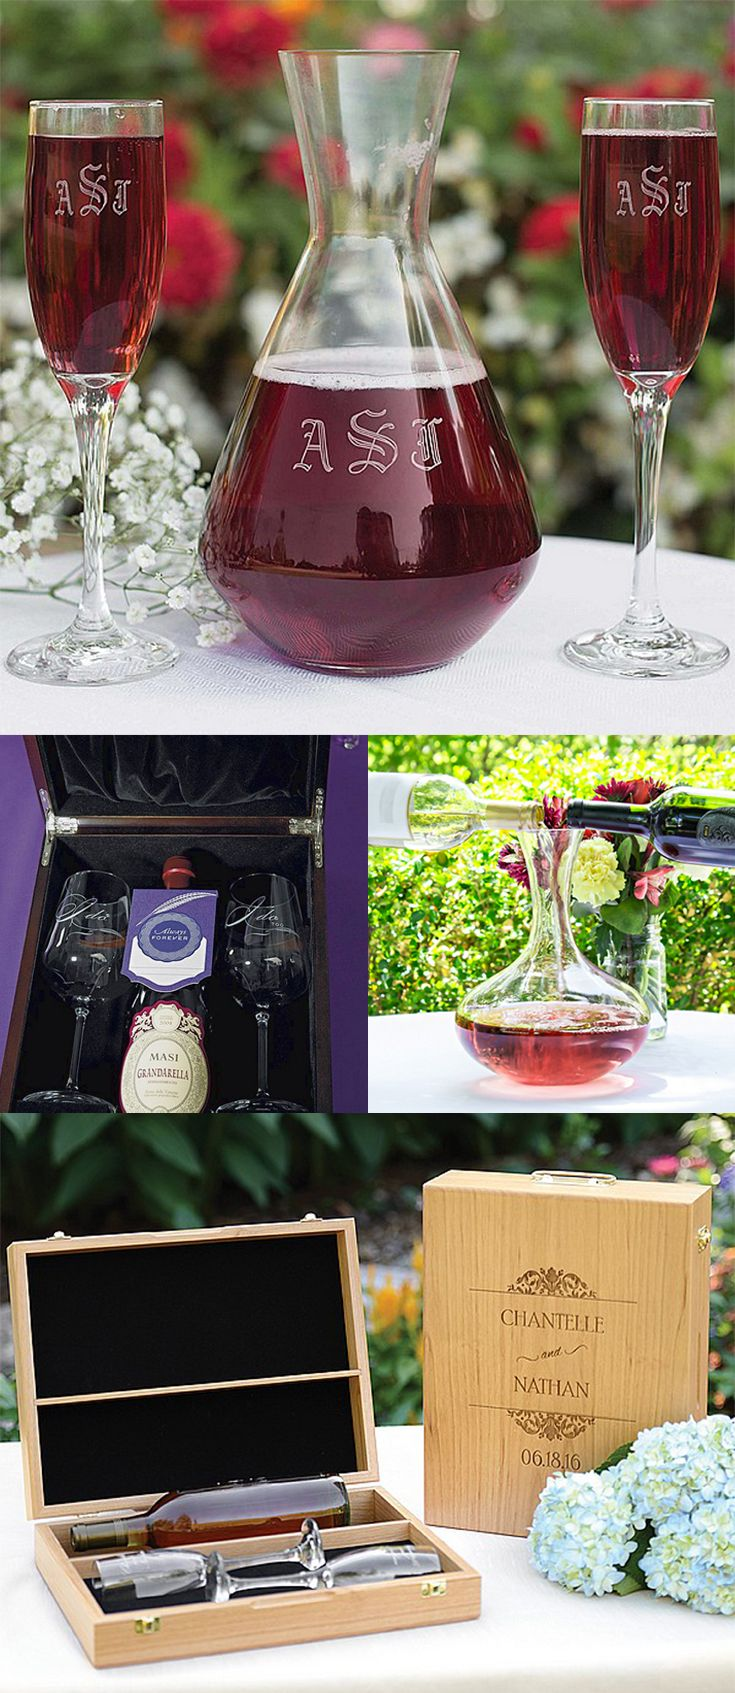 A wedding wine ceremony is a unique way for the bride and groom to exchange vows and celebrate their unity during their wedding ceremony. Wine decanter and wine glass sets can be personalized to create a lifetime keepsake that can be used for wedding anniversaries. Wine unity ceremony gift boxes also make wonderful heirloom-quality keepsakes for remembering and cherishing wedding vows. These wine ceremony sets can be ordered at…